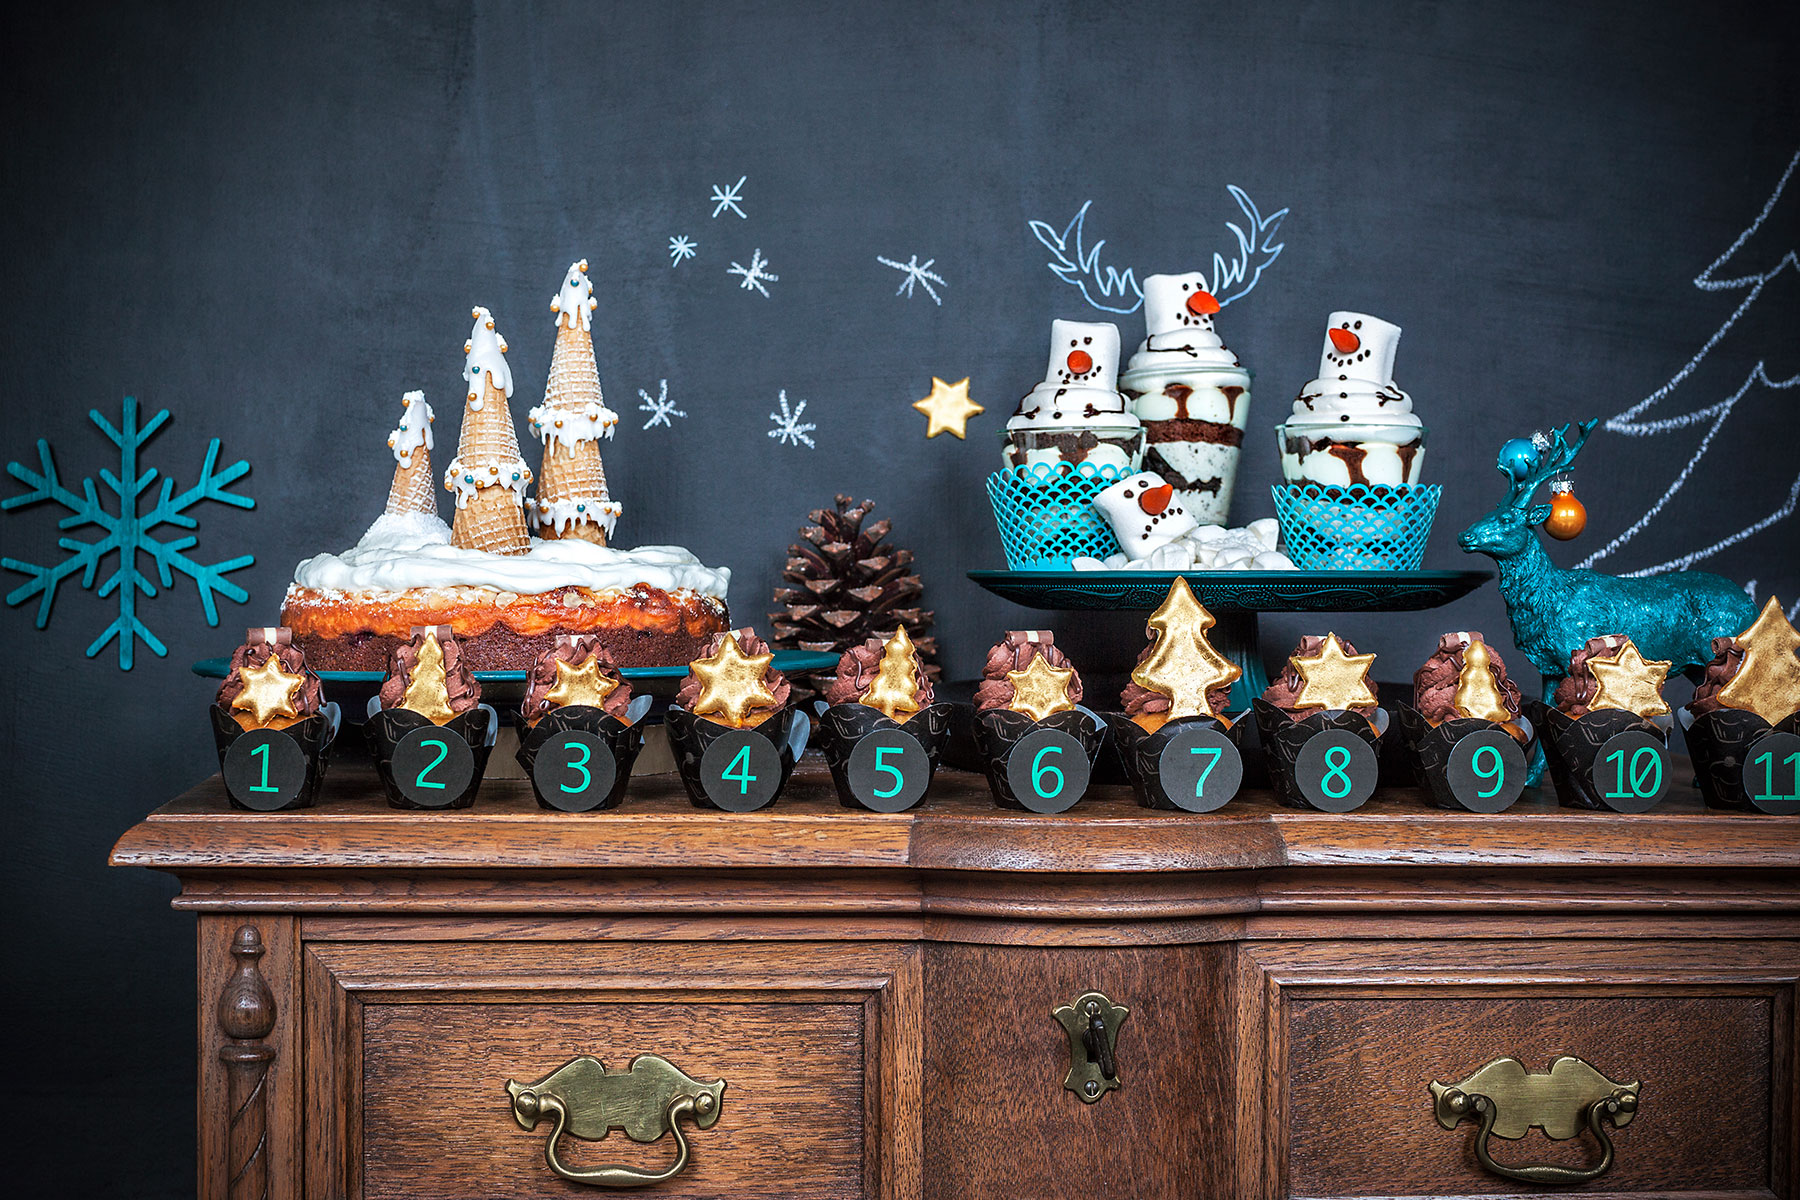 dessert f r weihnachten schnelle weihnachts cupcakes u v. Black Bedroom Furniture Sets. Home Design Ideas